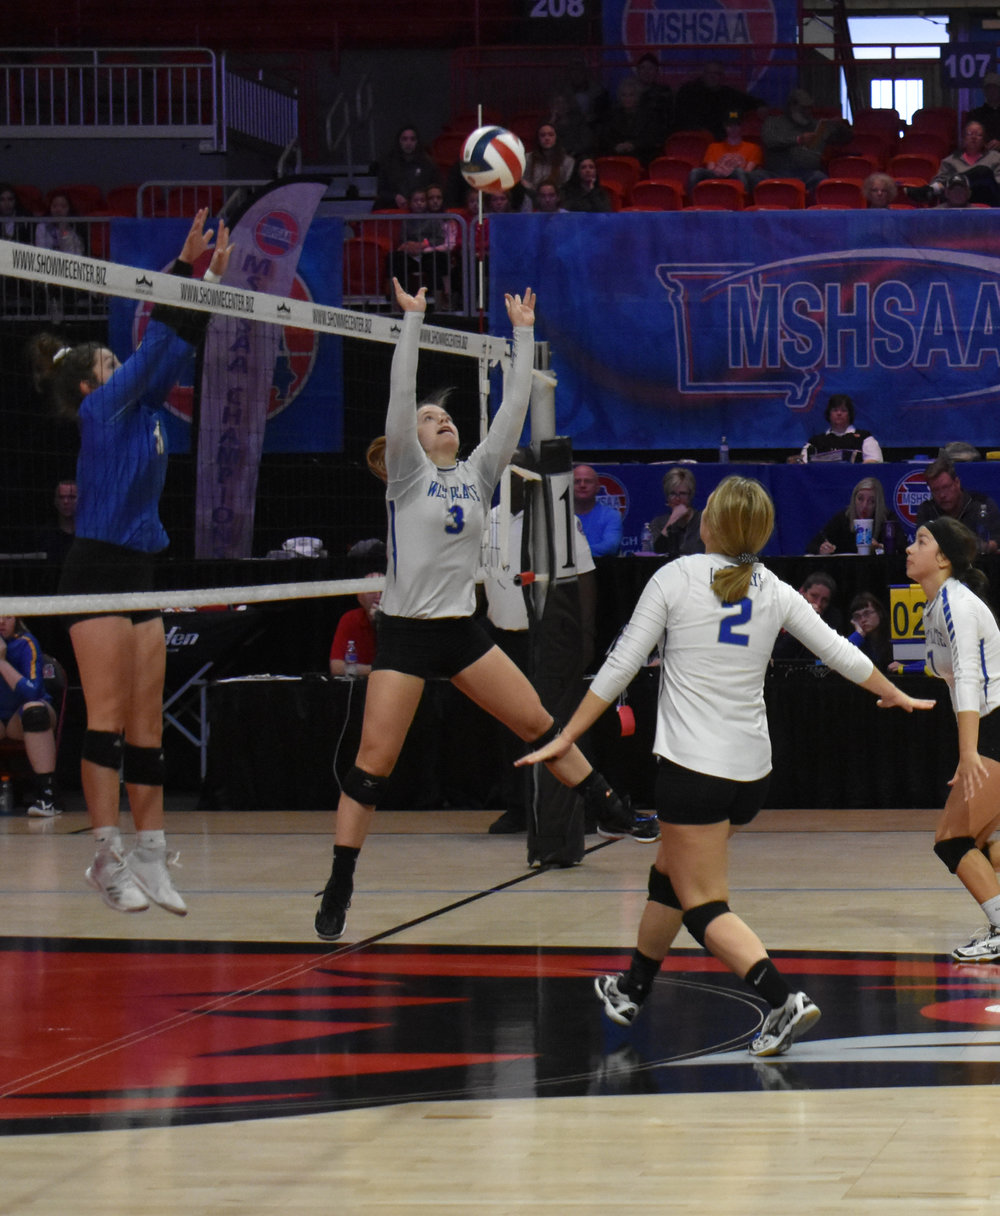 Submitted photo West Platte's Faith Stevens (3) sets the ball for teammate Samantha Rotterman (2) during the Class 1 third-place match on Saturday, Nov. 3 against Billings in Cape Girardeau, Mo.